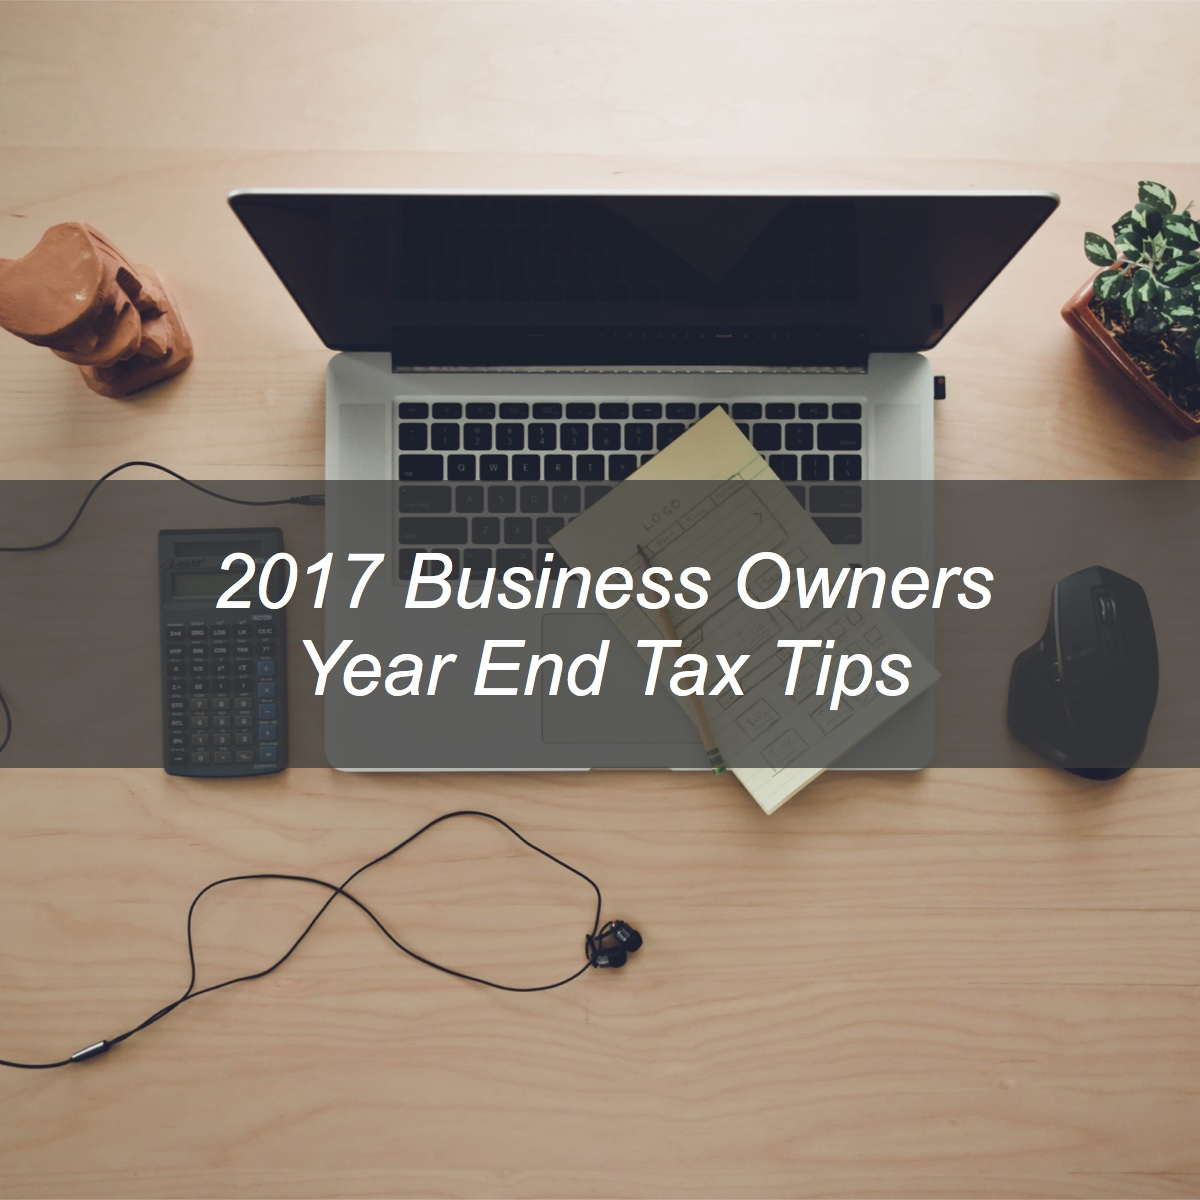 Business Owners: 2017 Year End Tax Tips